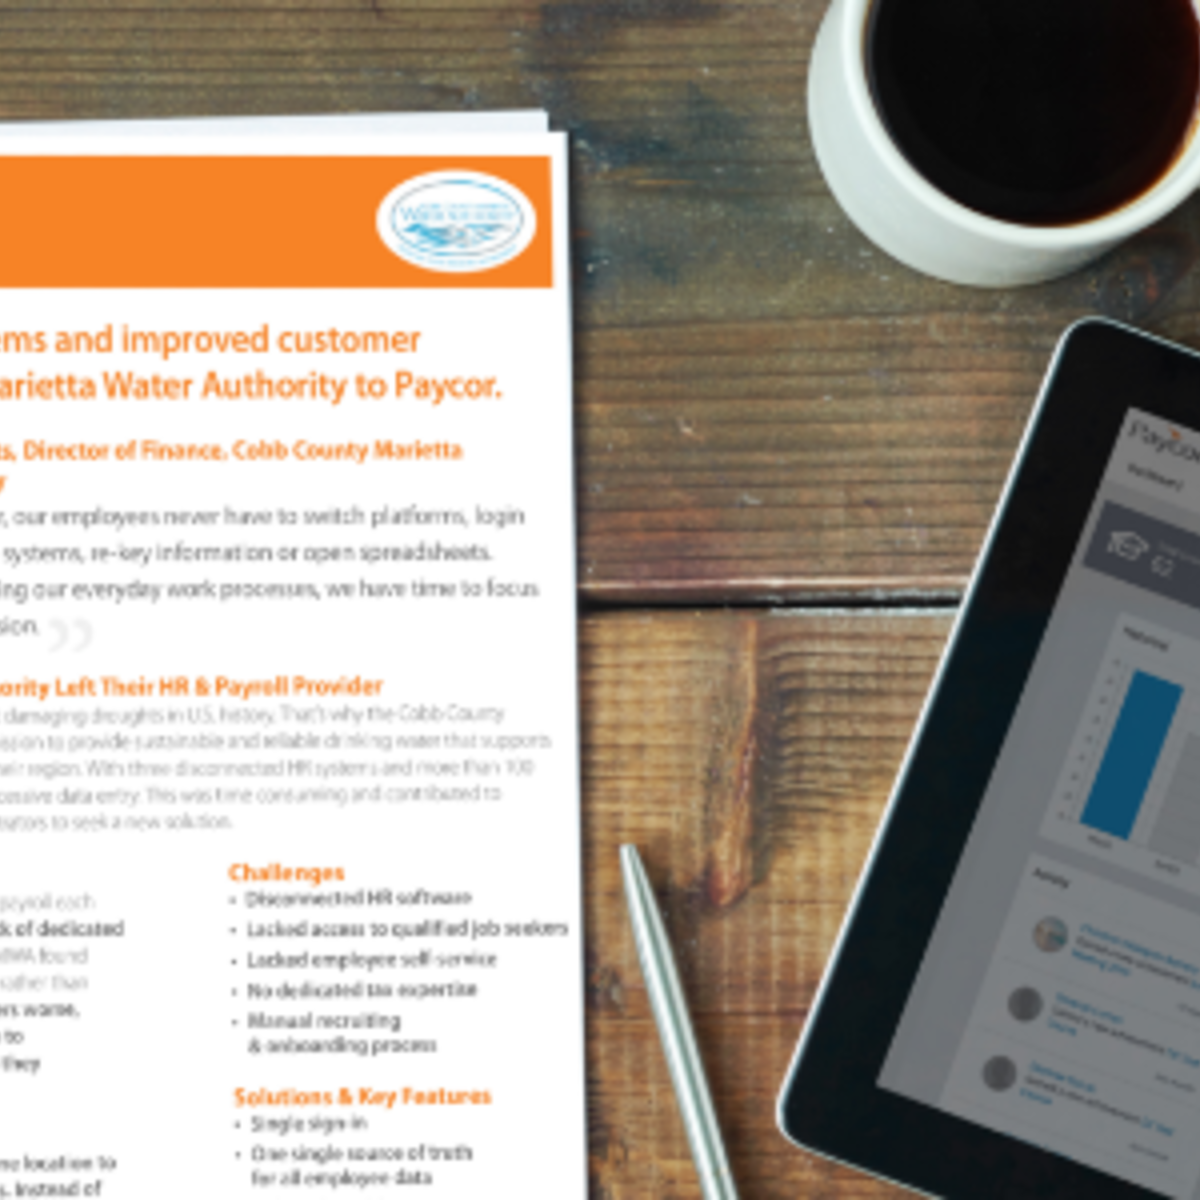 Case Study: Cobb County Marietta Water Authority | Paycor